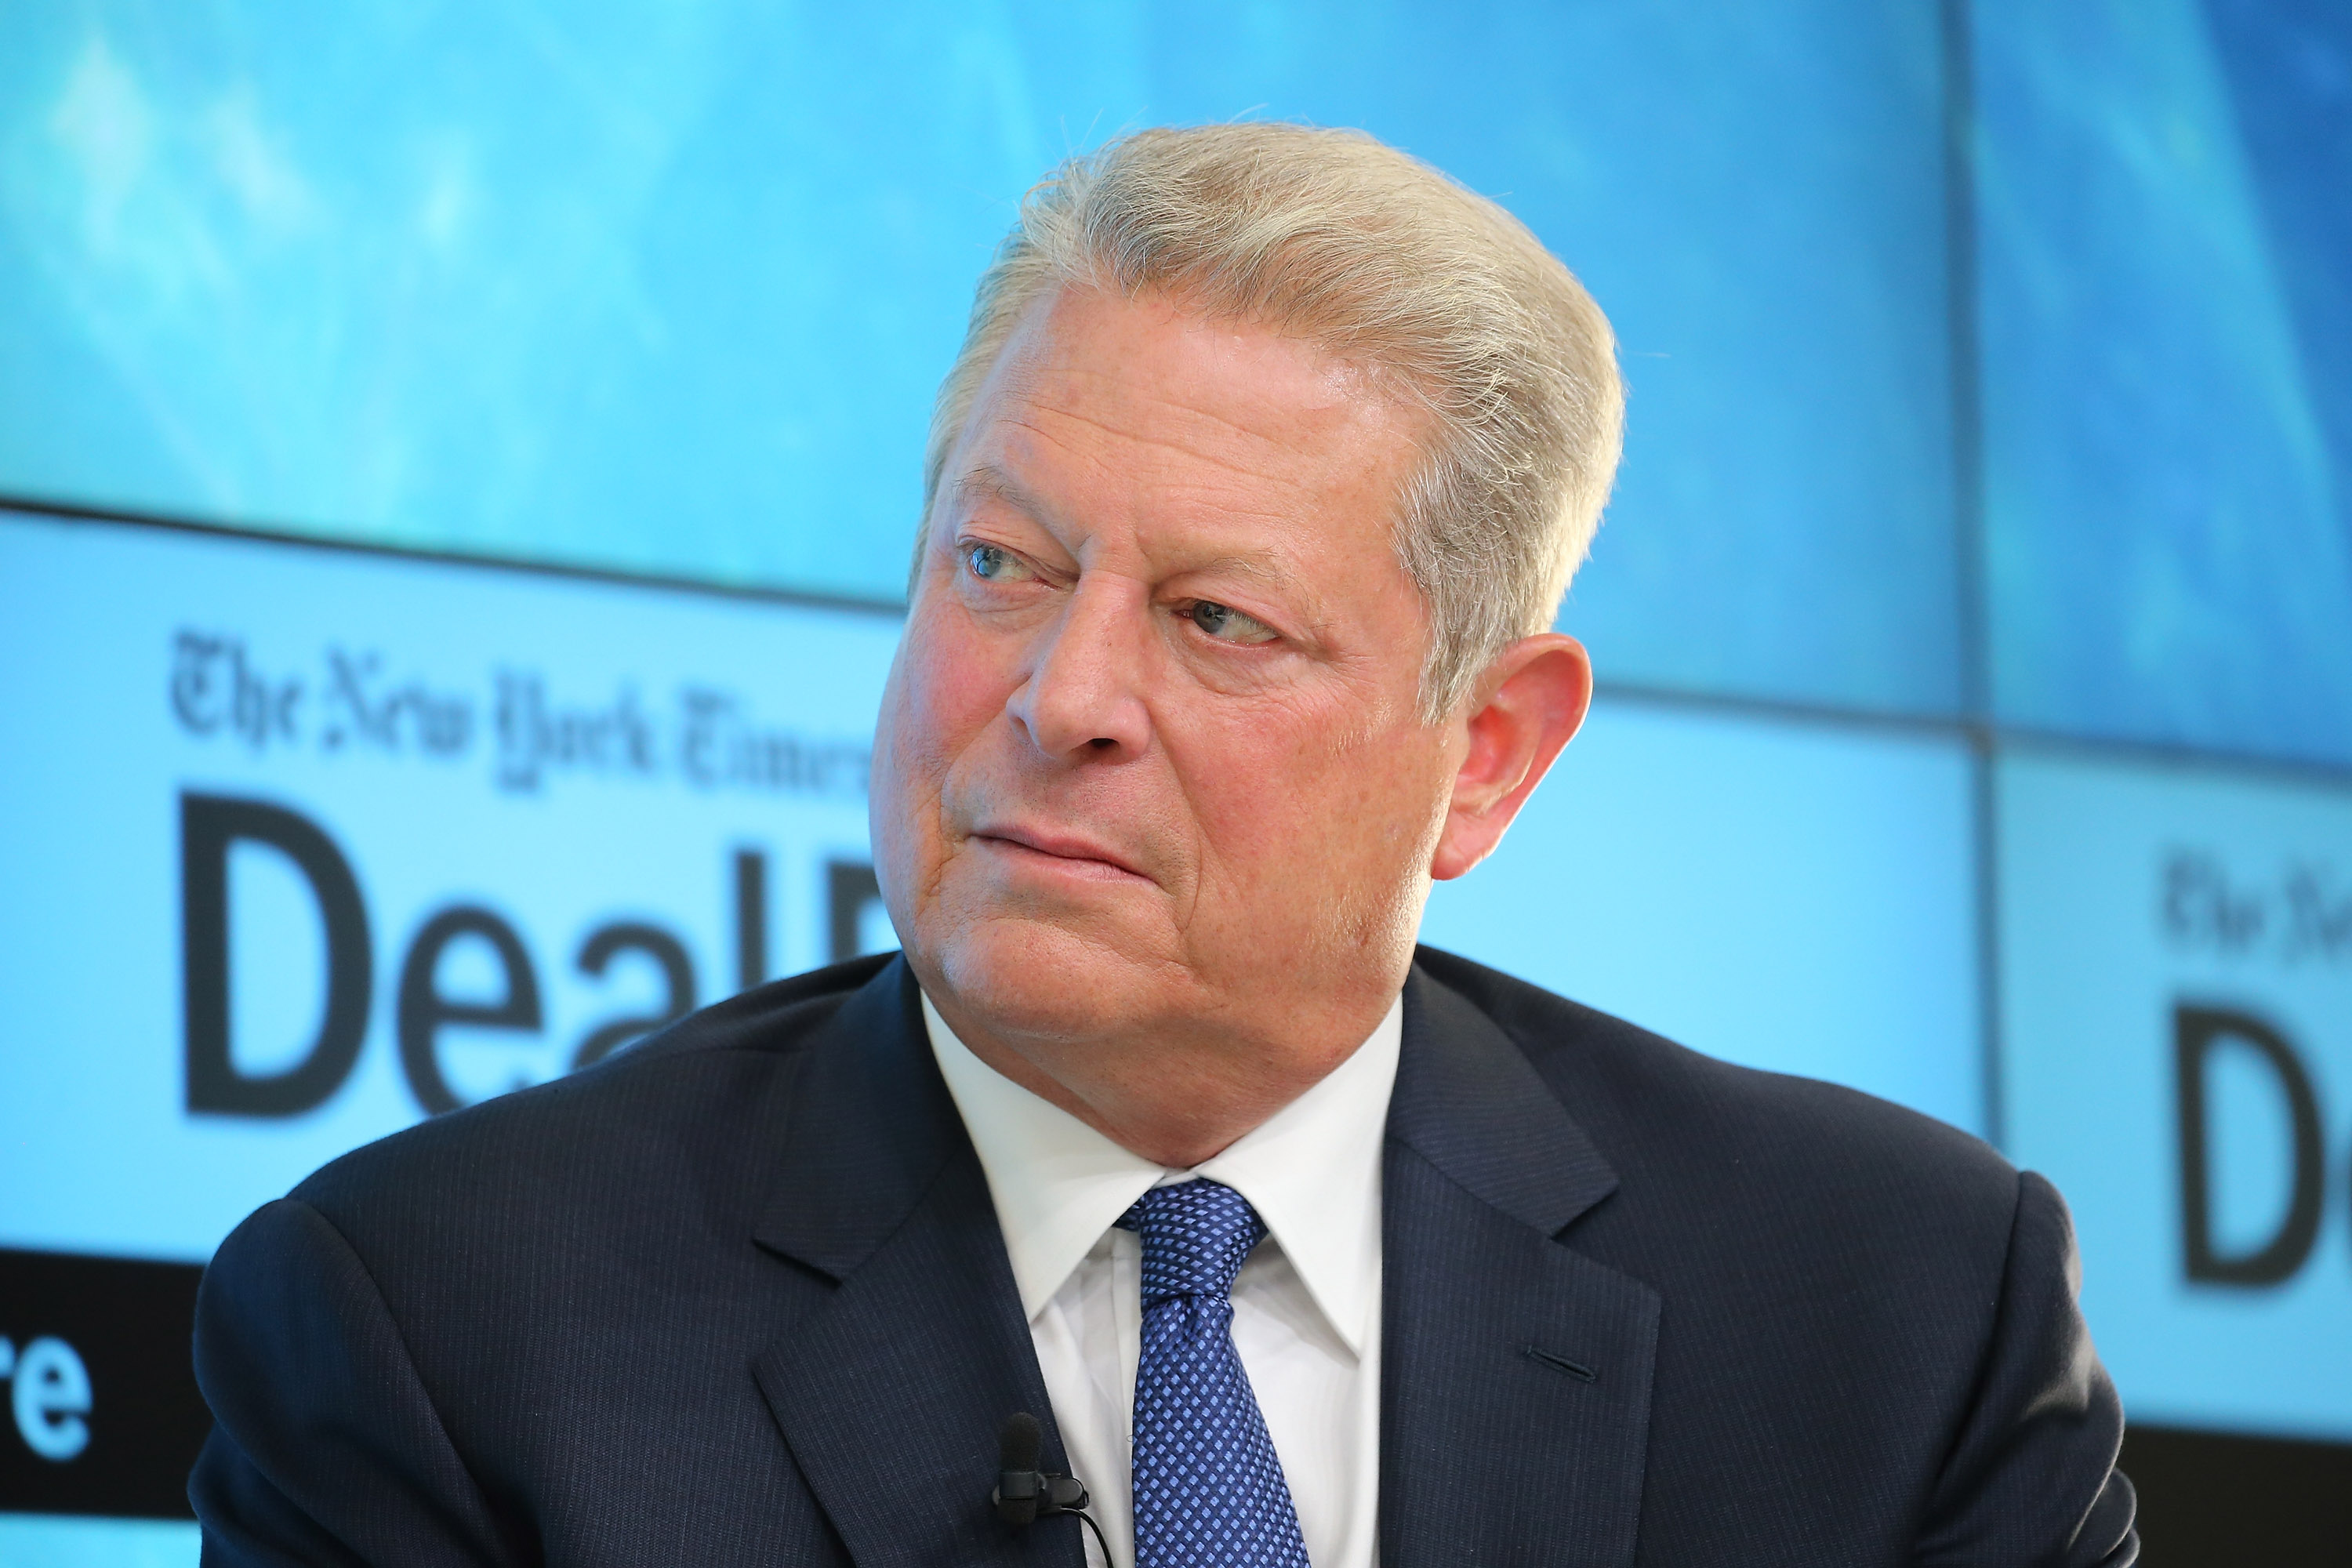 Former Vice President Al Gore, chairman of Generation Investment Management and chairman of The Climate Reality Project, participates in a panel discussion at the New York Times 2015 DealBook Conference at the Whitney Museum of American Art on November 3, 2015 in New York City.  (Neilson Barnard/Getty Images-- New York Times)